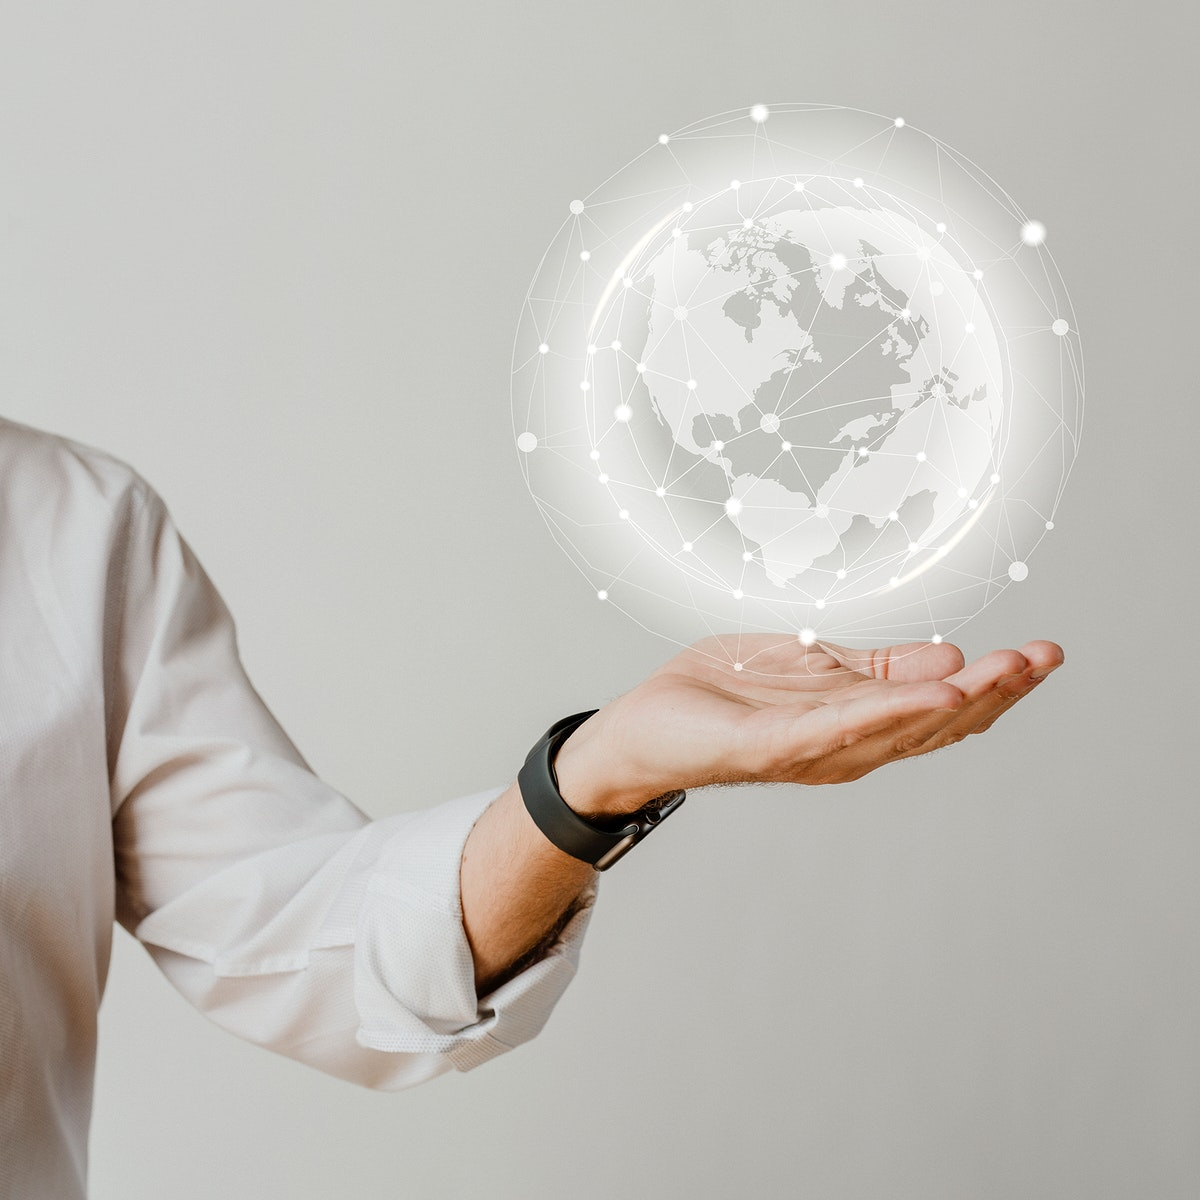 Man presenting a globe in his palm